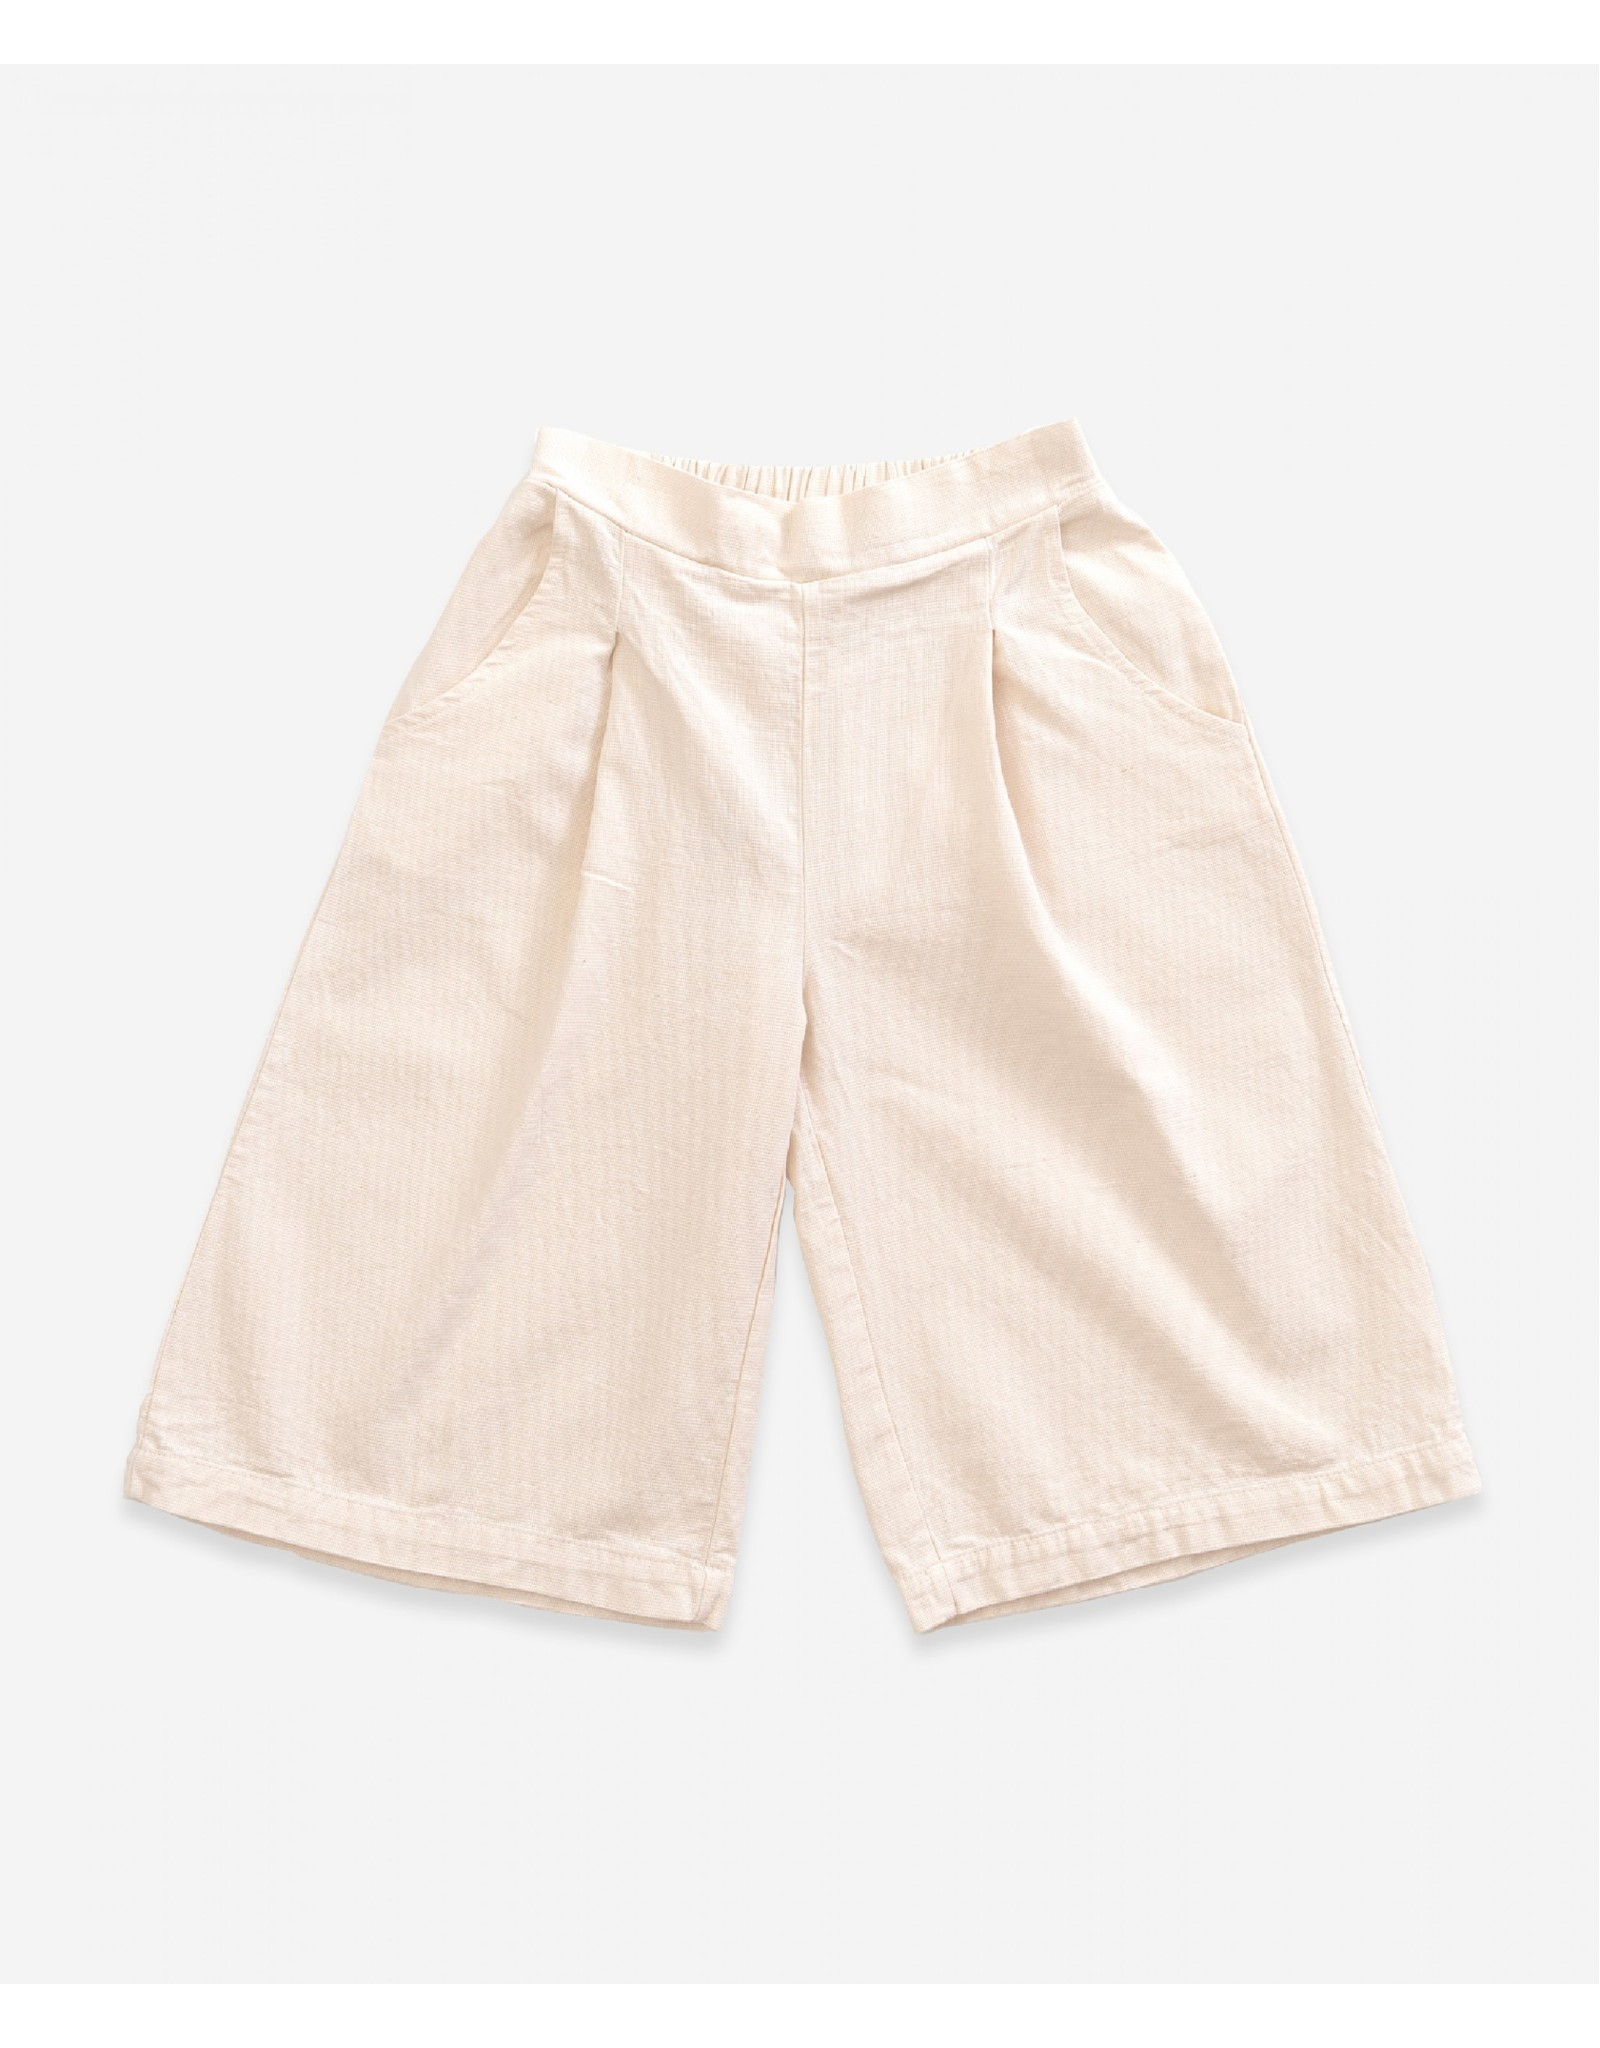 Play up Broek Culotte creme wit